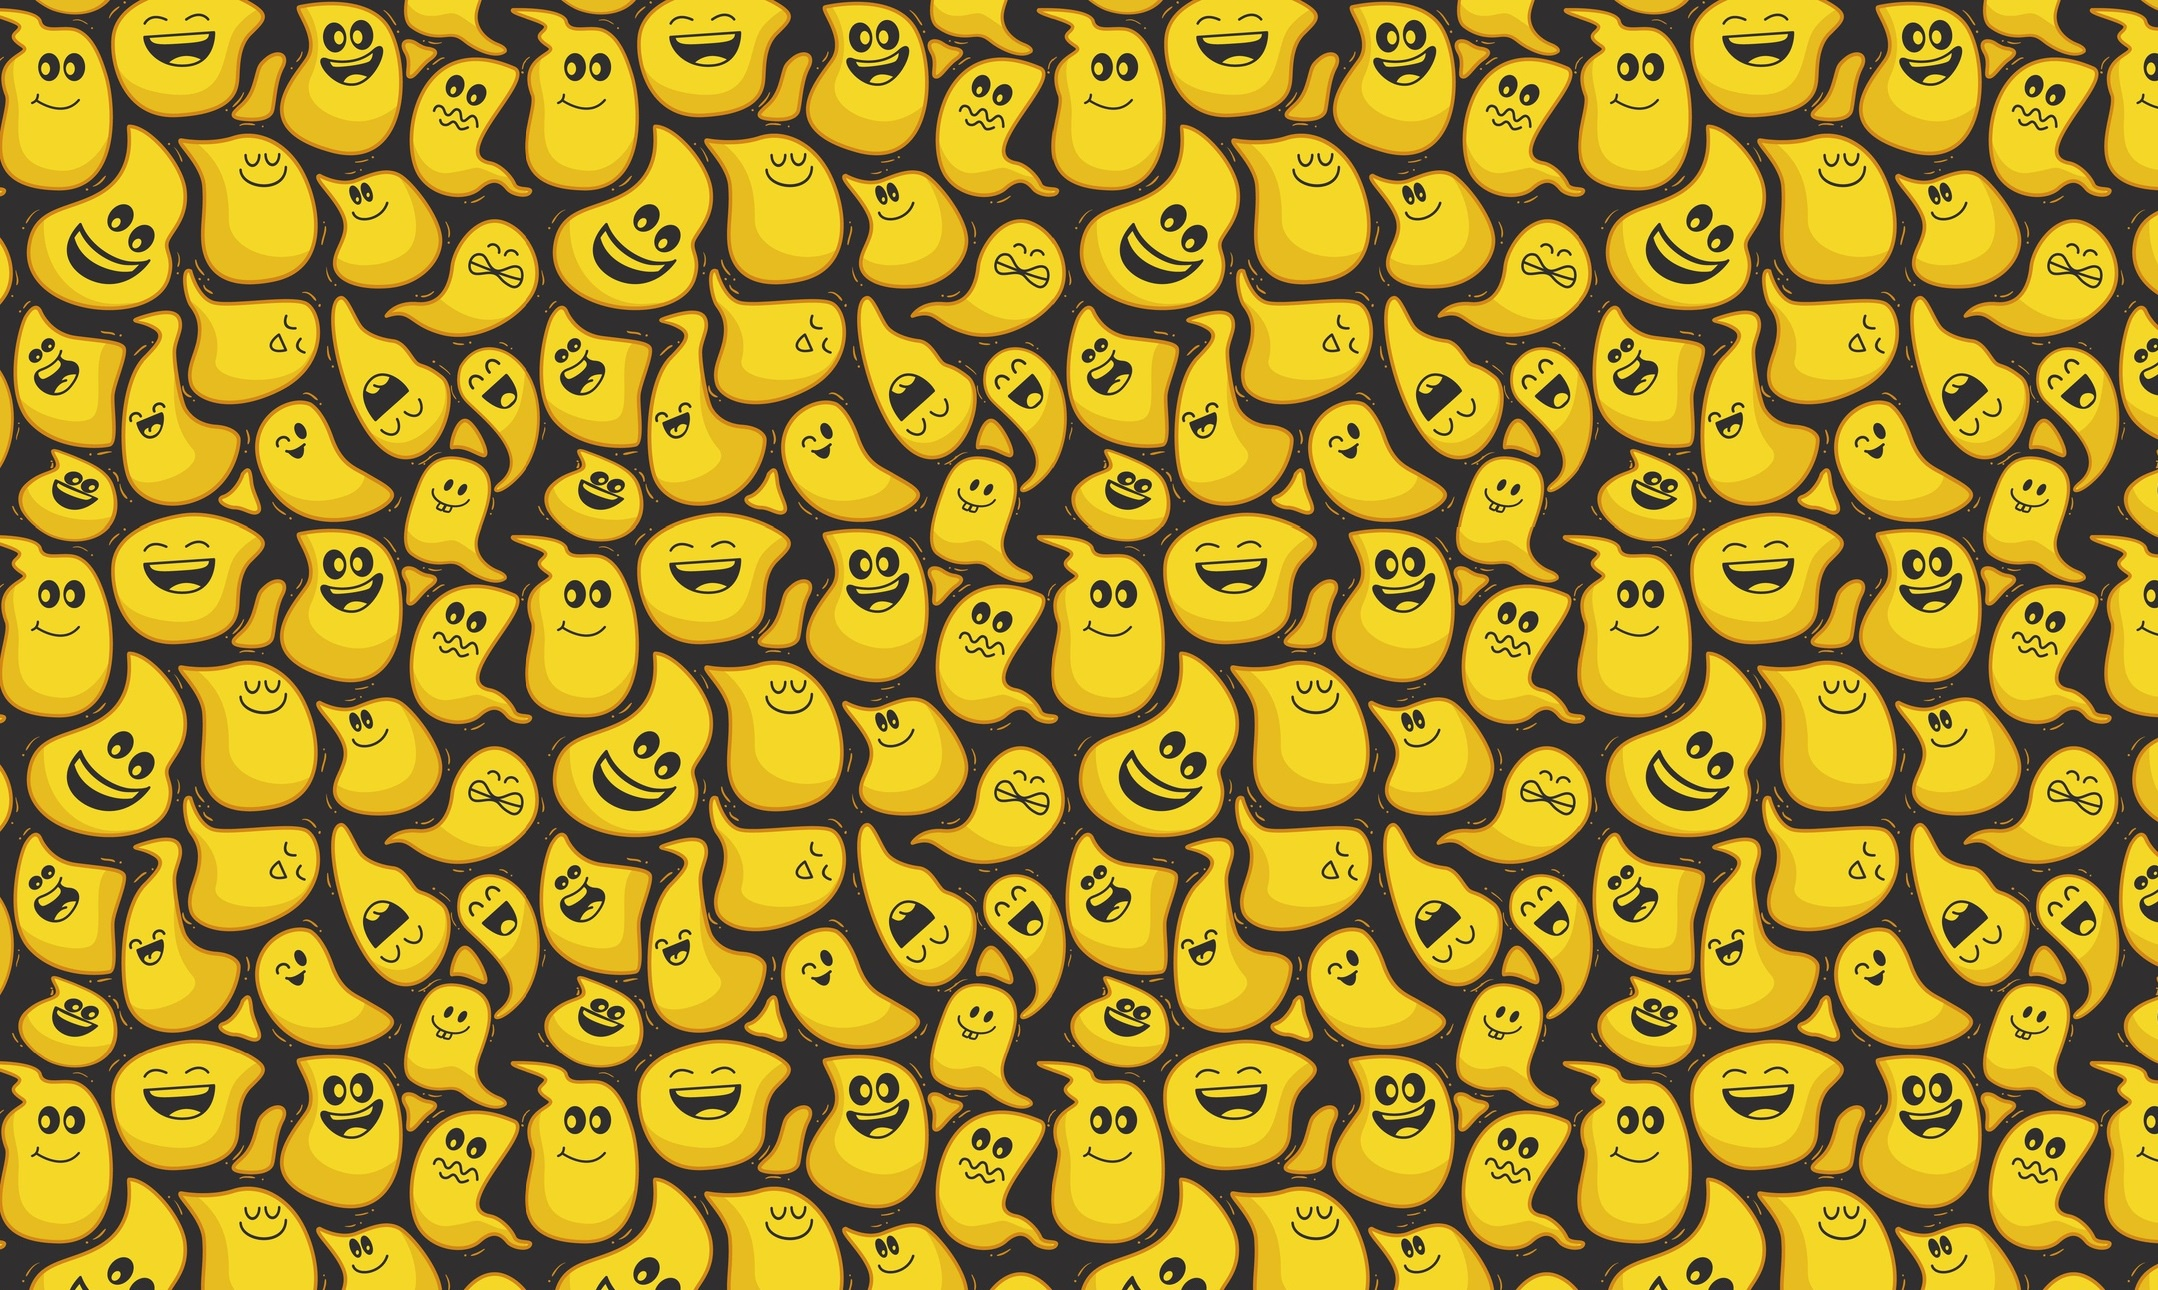 General 2158x1290 Halloween ghosts pattern yellow